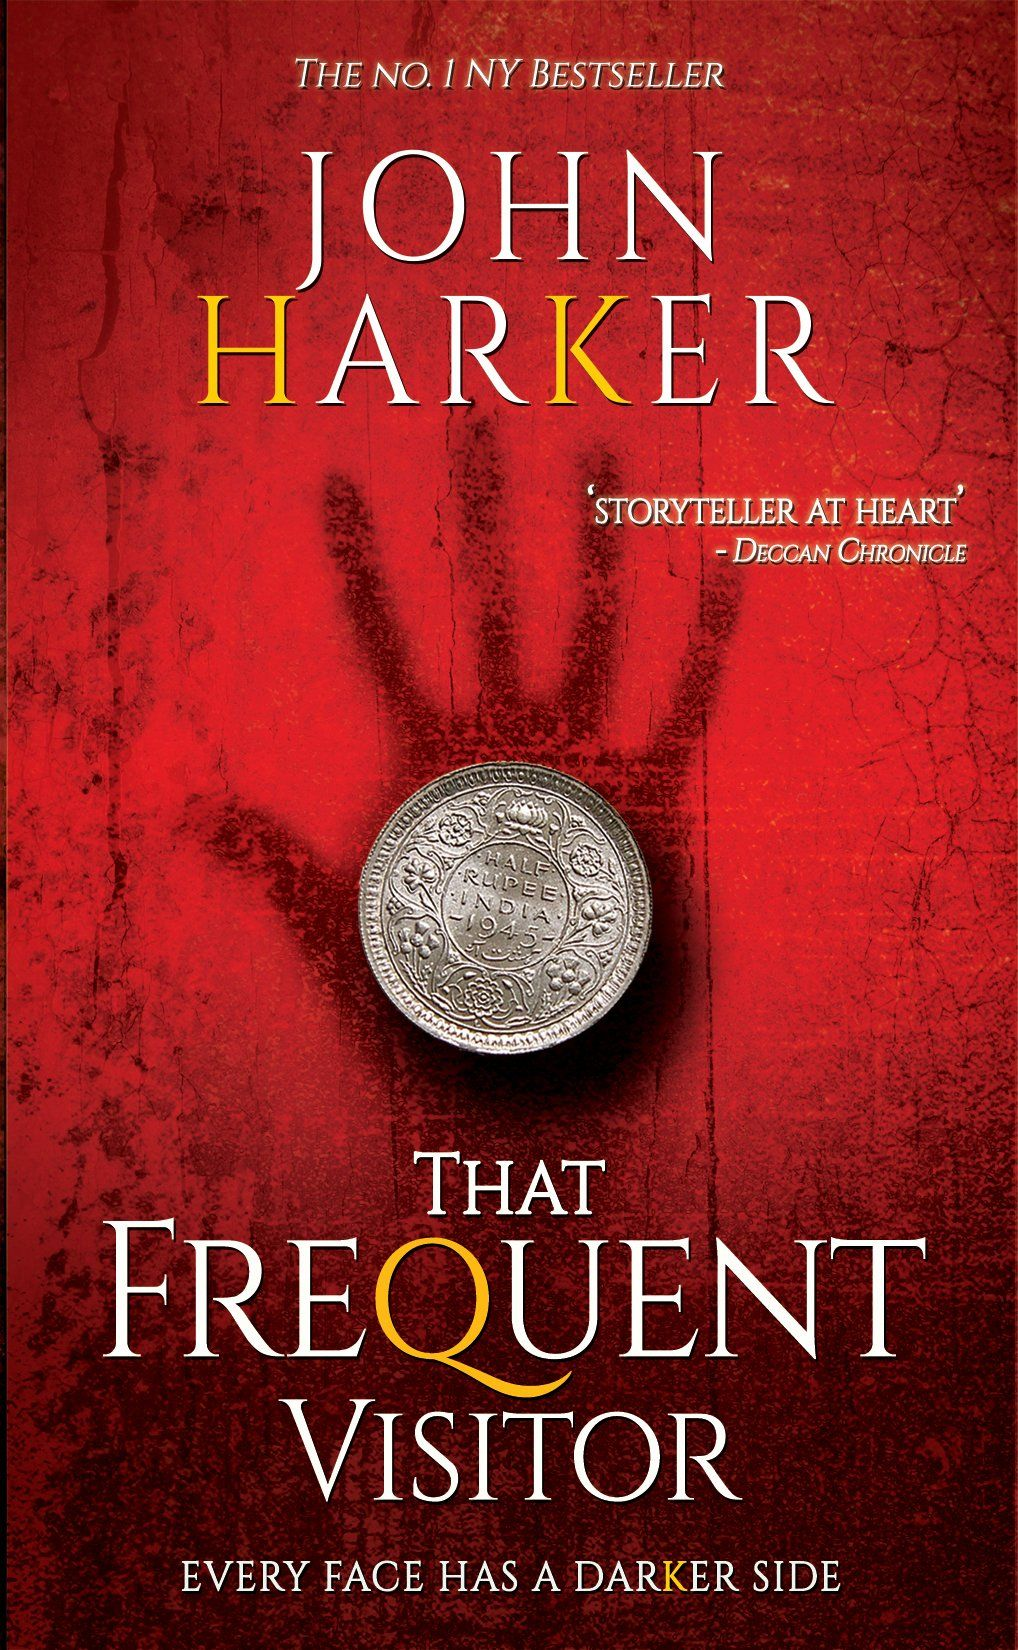 That Frequent Visito by John Harker